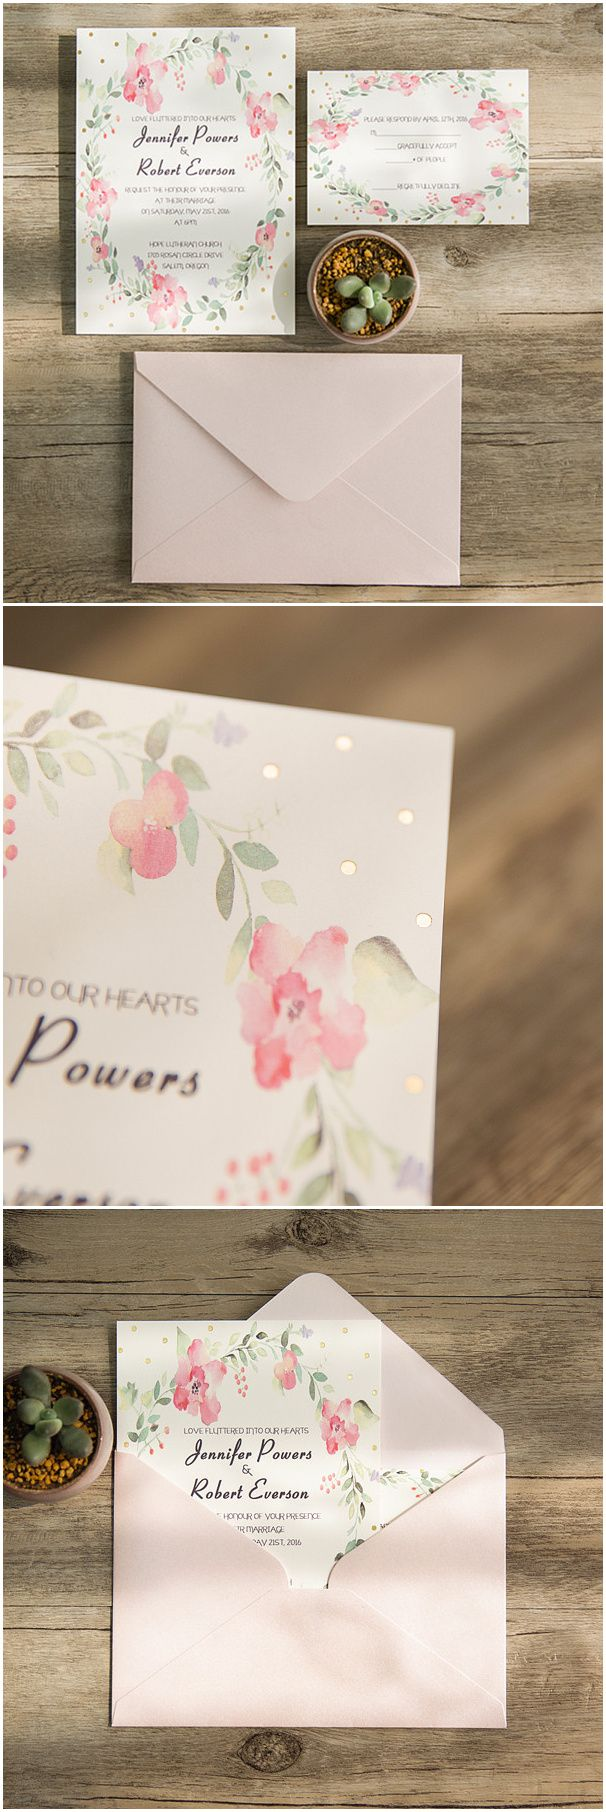 chic pink and green floral wedding invitations with foiled polka dots